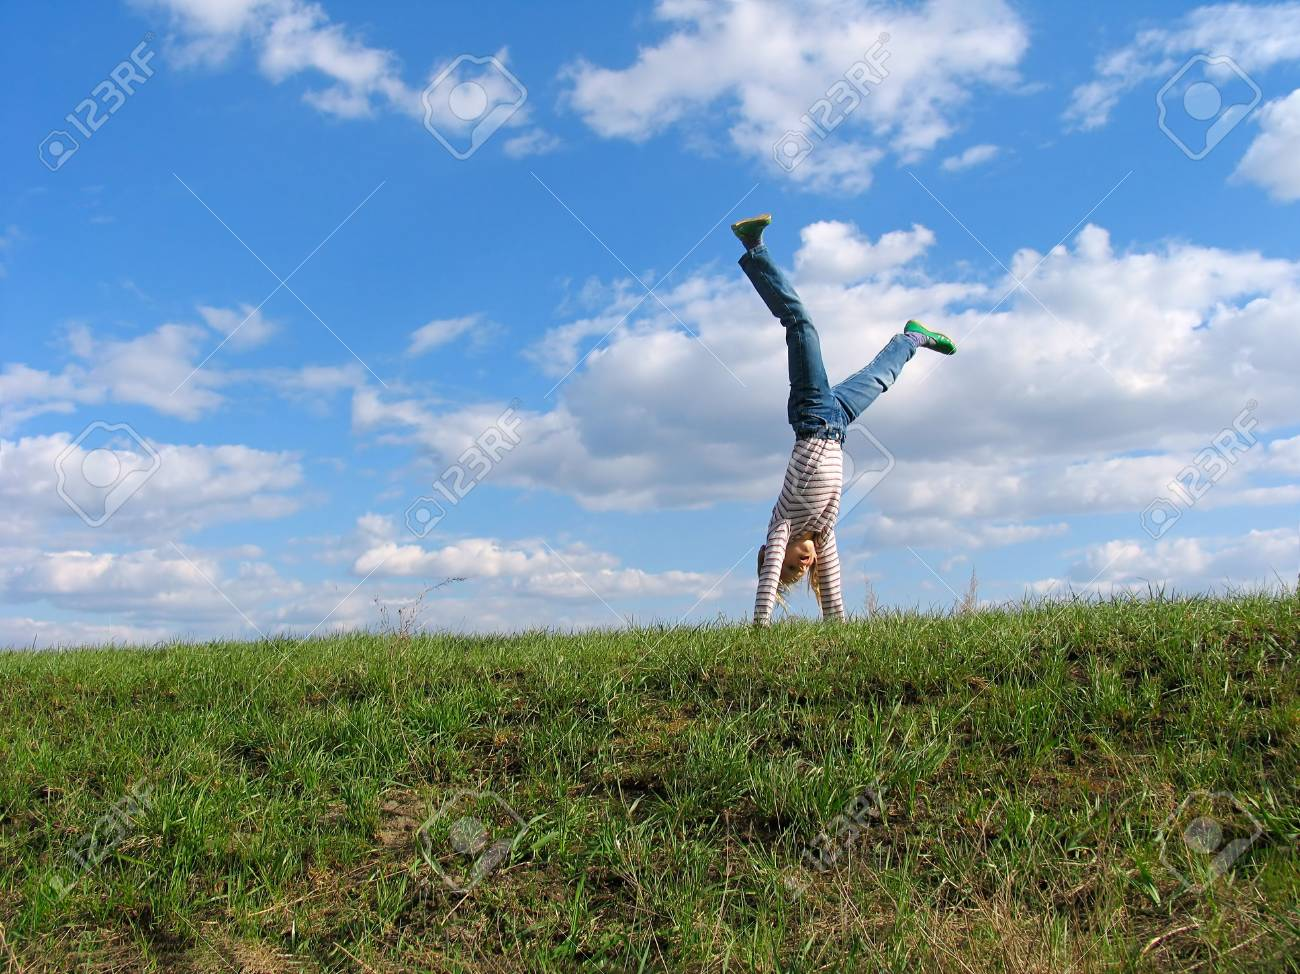 Somersault on grass on the sky&clouds background Stock Photo - 217605